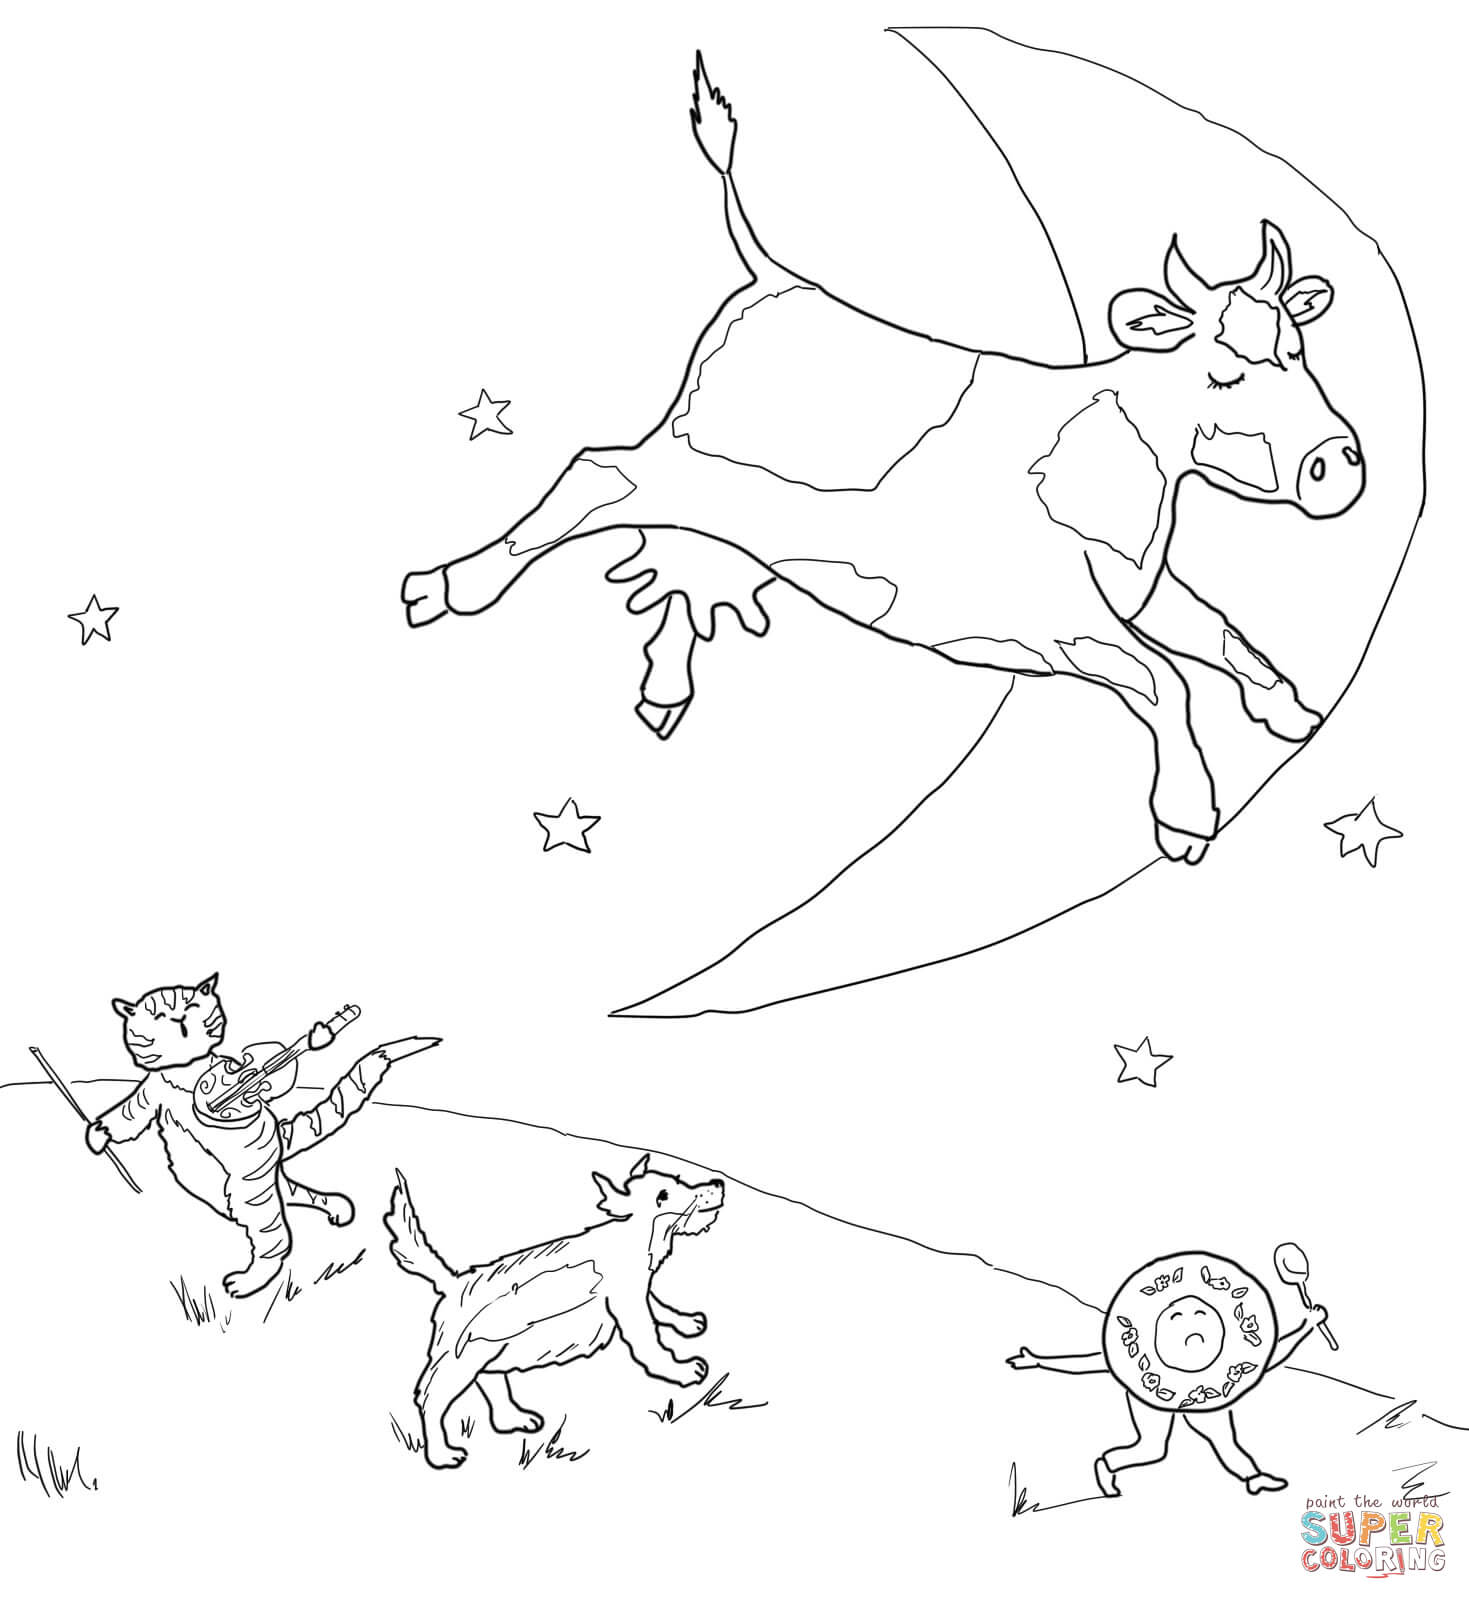 Cow Jumped Over The Moon Coloring Page Coloring Pages